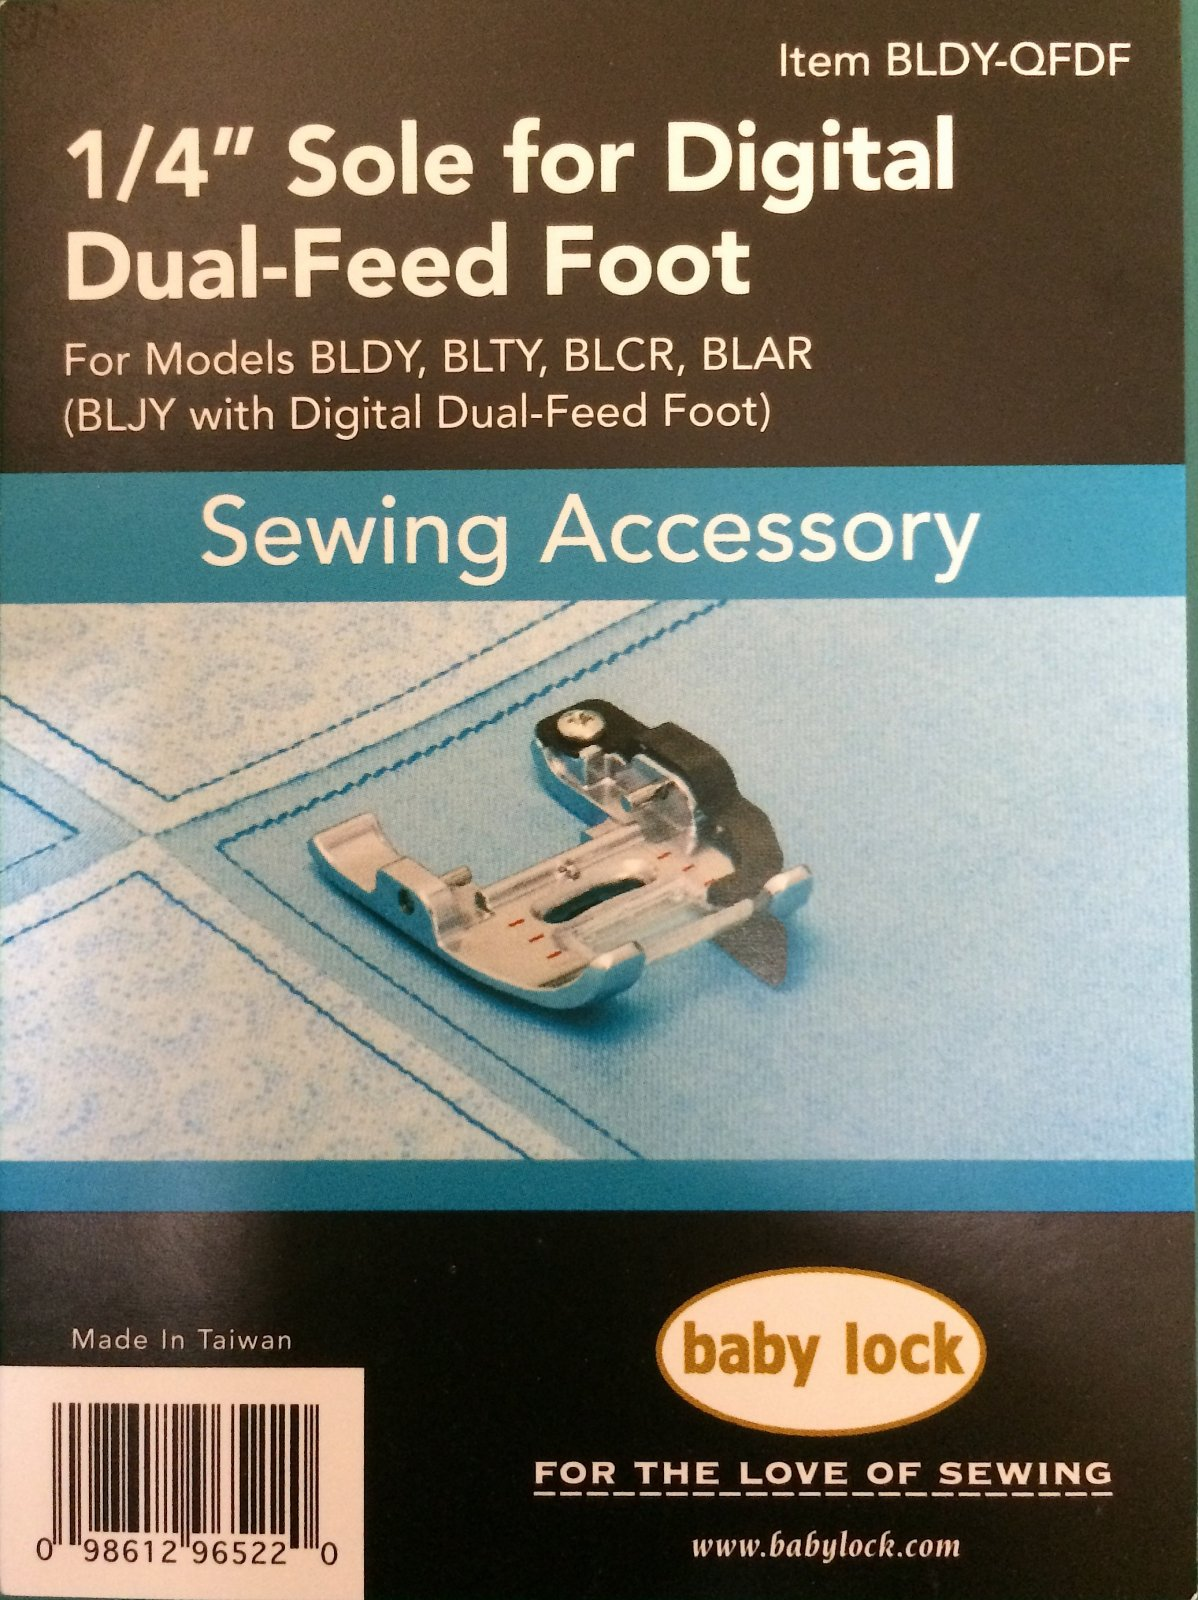 1/4 Sole for Digital Dual-Feed Foot